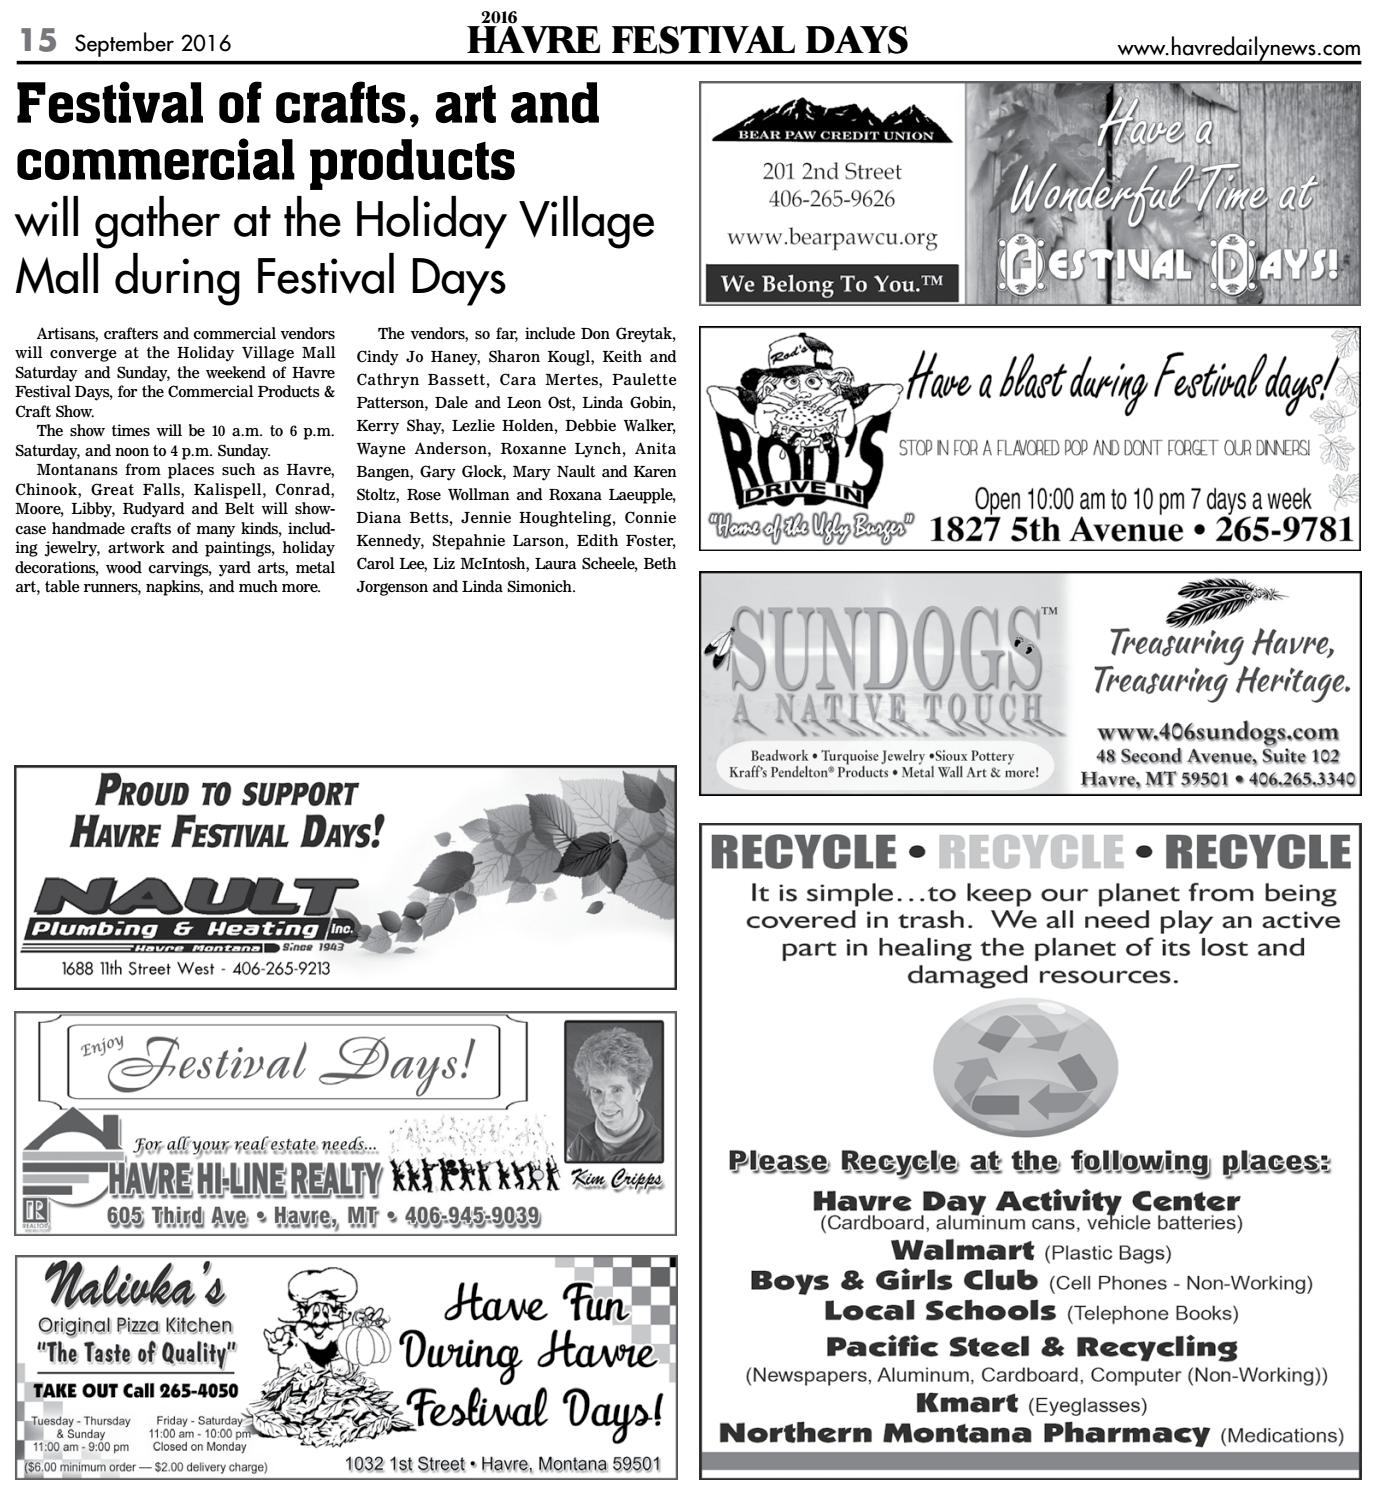 Festival Days Tab 2016 By Havre Daily News Issuu